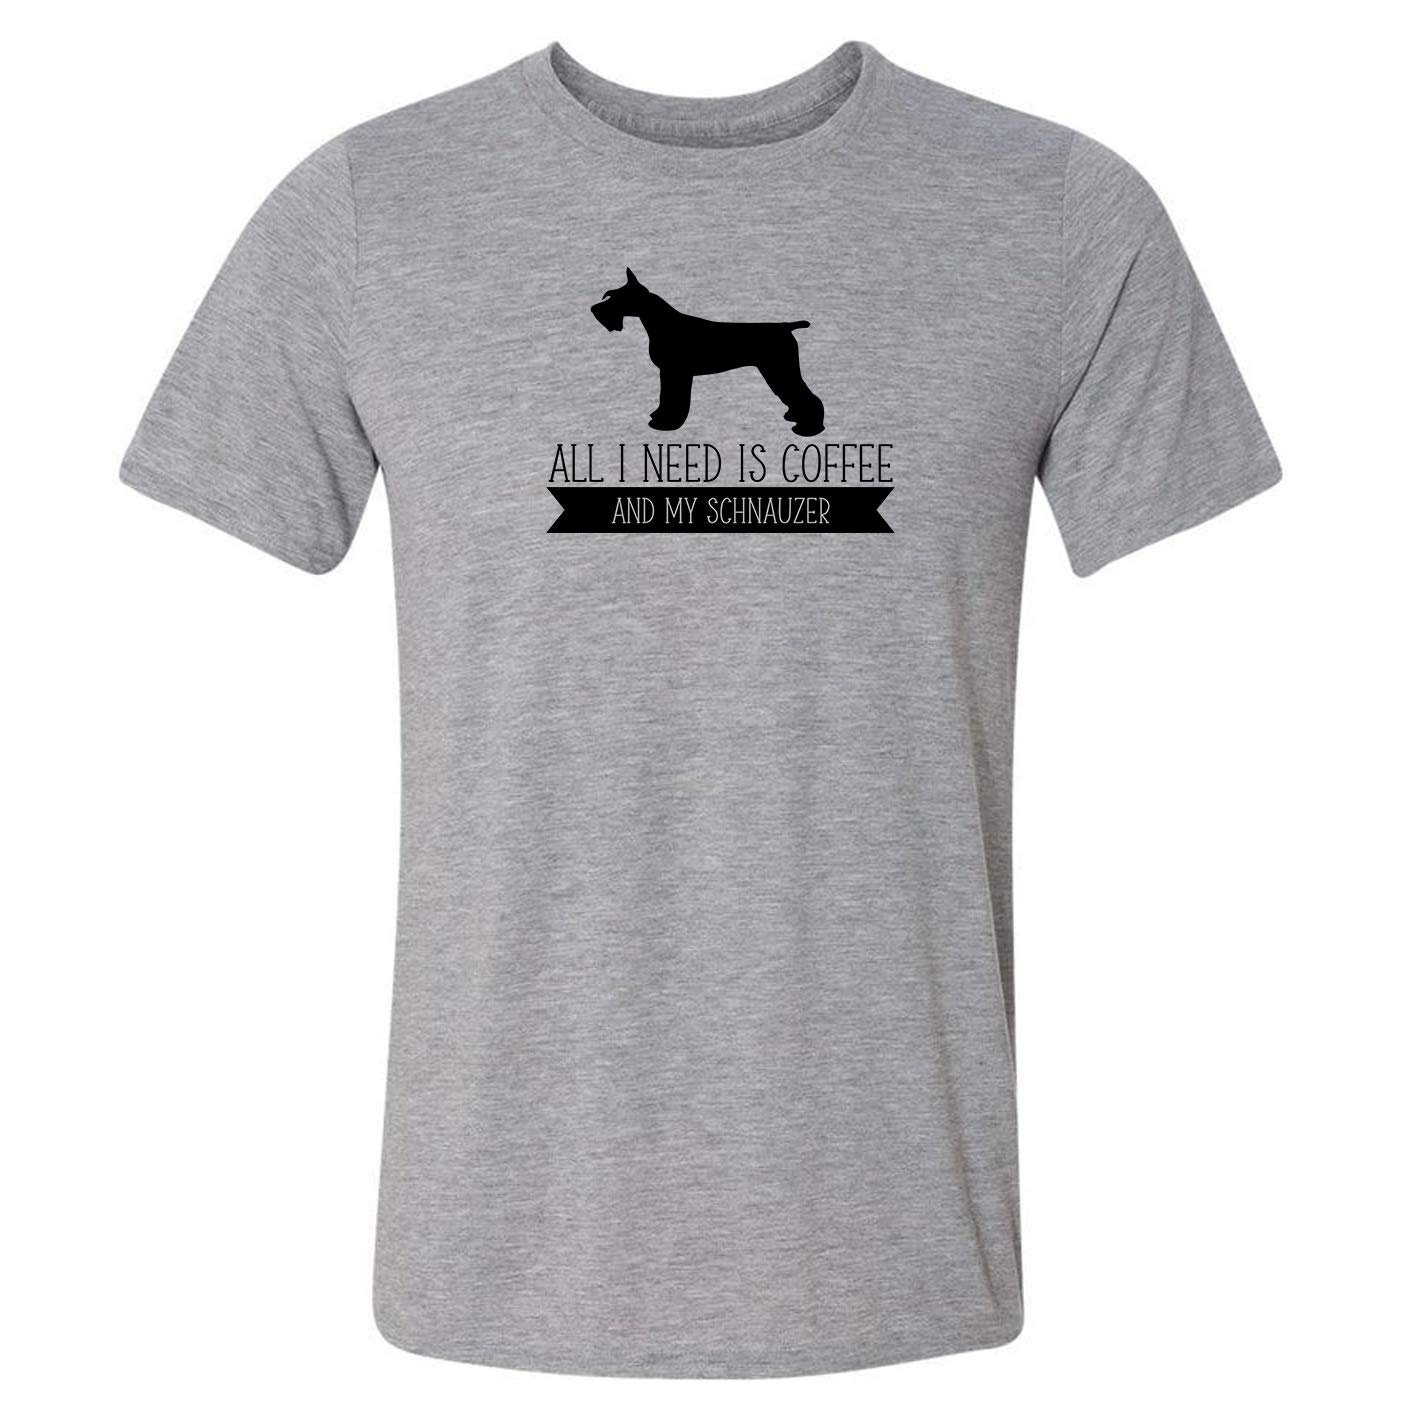 NEW before selling ☆ All I Need is Coffee New life T-Shirt and My Schnauzer